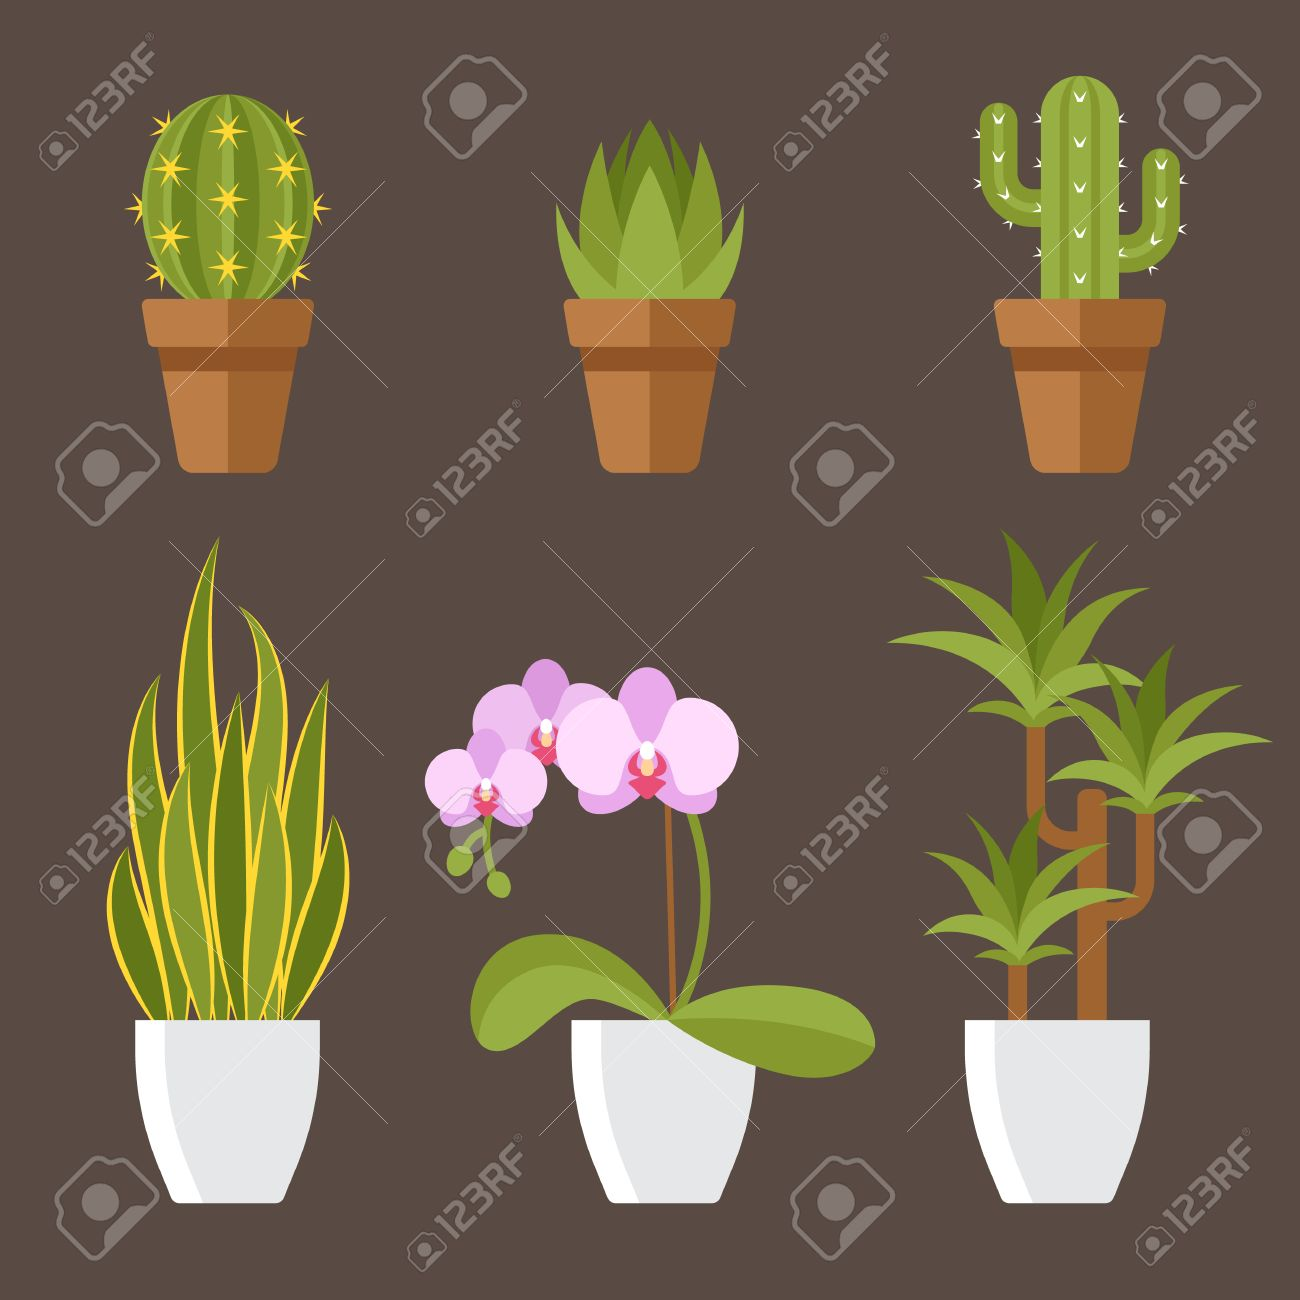 Vector   Vector Set Of Home Plants In Pots For Interior Decoration.  Cactuses, Aloe, Snake Plant, Orchid Flower, Dracaena. Flat Style.